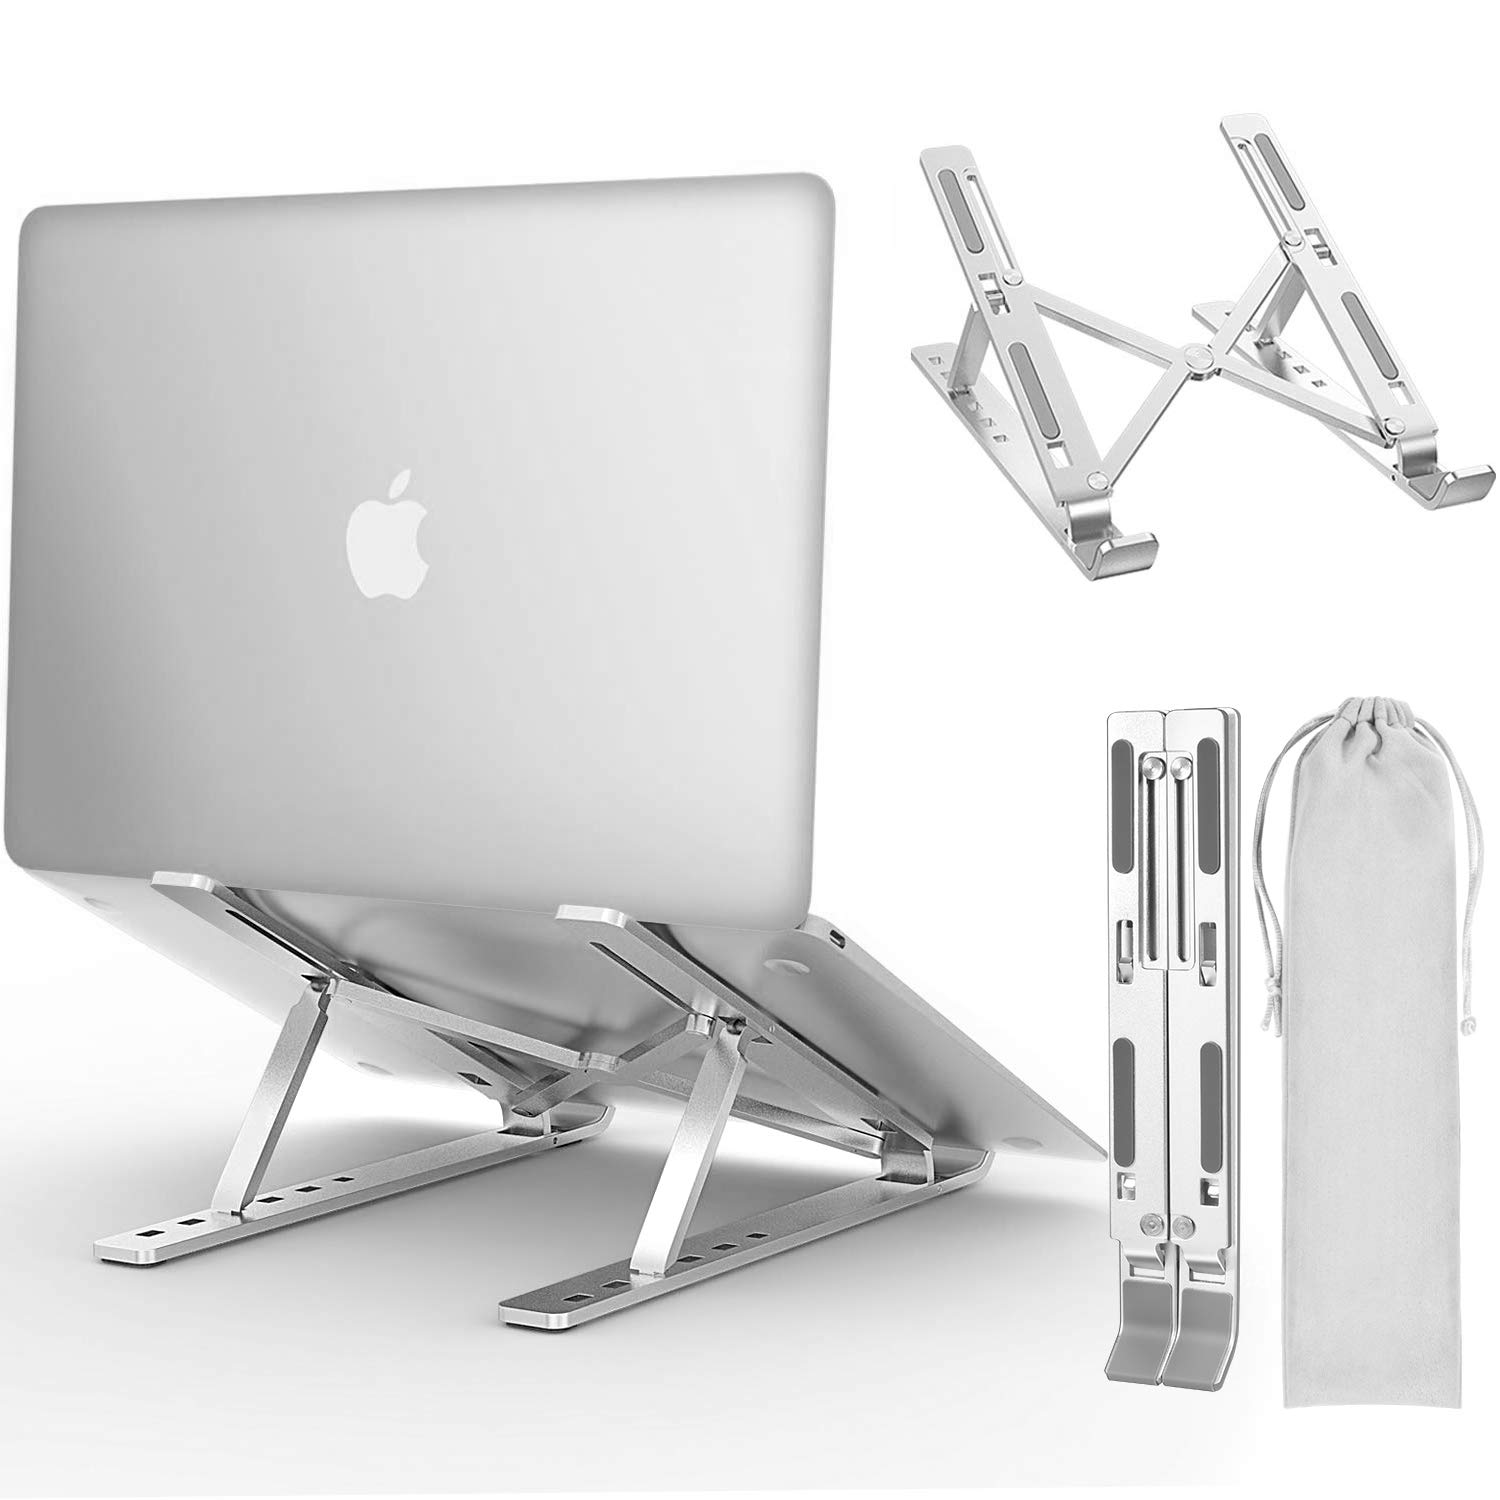 "Laptop Stand, iVoler Adjustable Aluminum Laptop Computer Stand Tablet Stand,Ergonomic Foldable Portable Desktop Holder Compatible with MacBook Air Pro, Dell XPS, HP, Lenovo More 10-17"" Laptops"